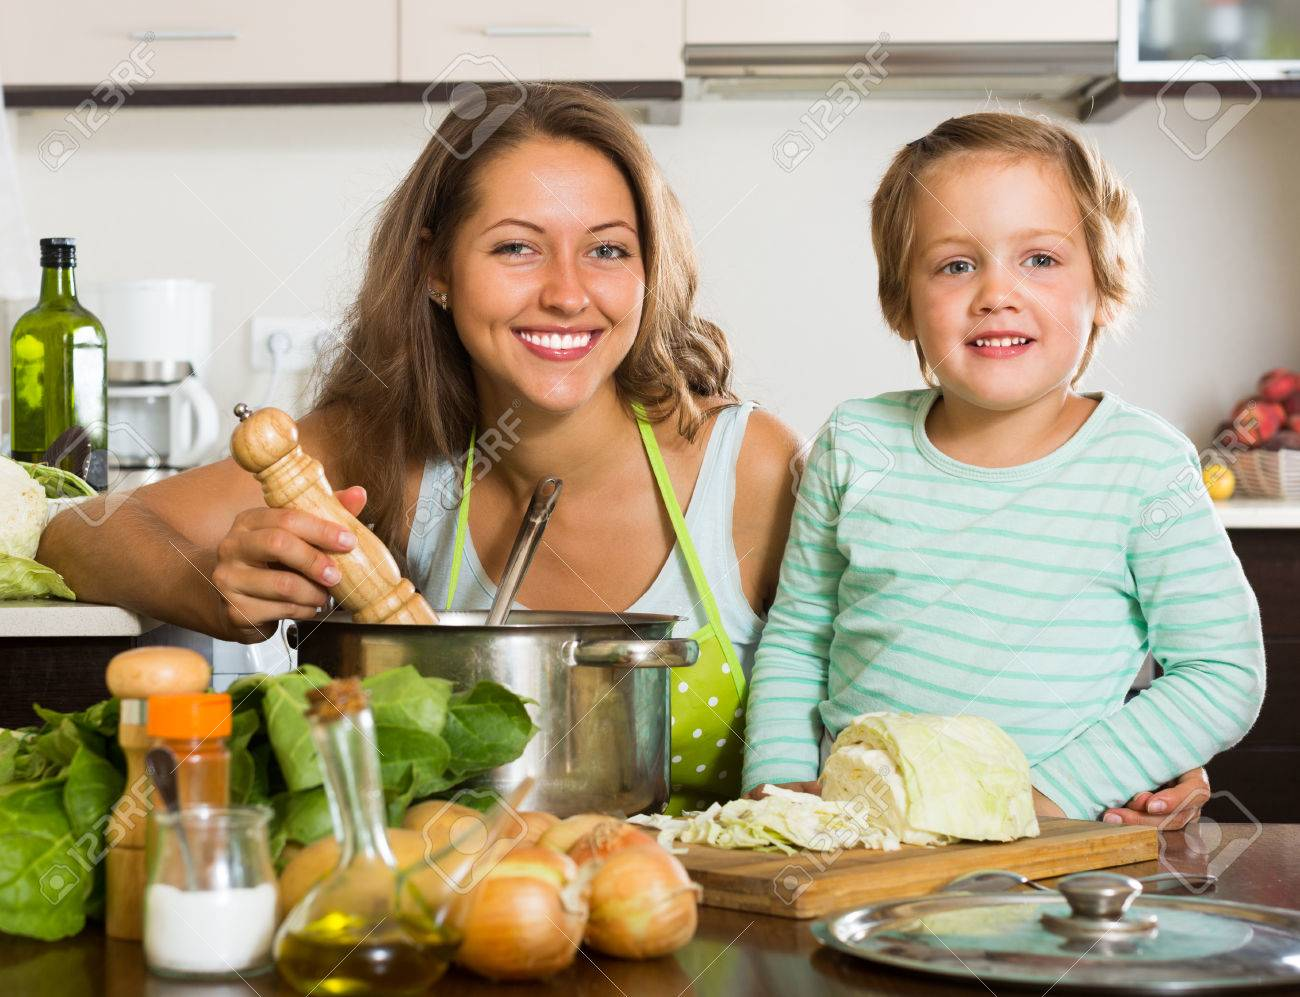 Family cooking kitchen - Happy Family Cooking Soup At Home Kitchen Stock Photo 41898170